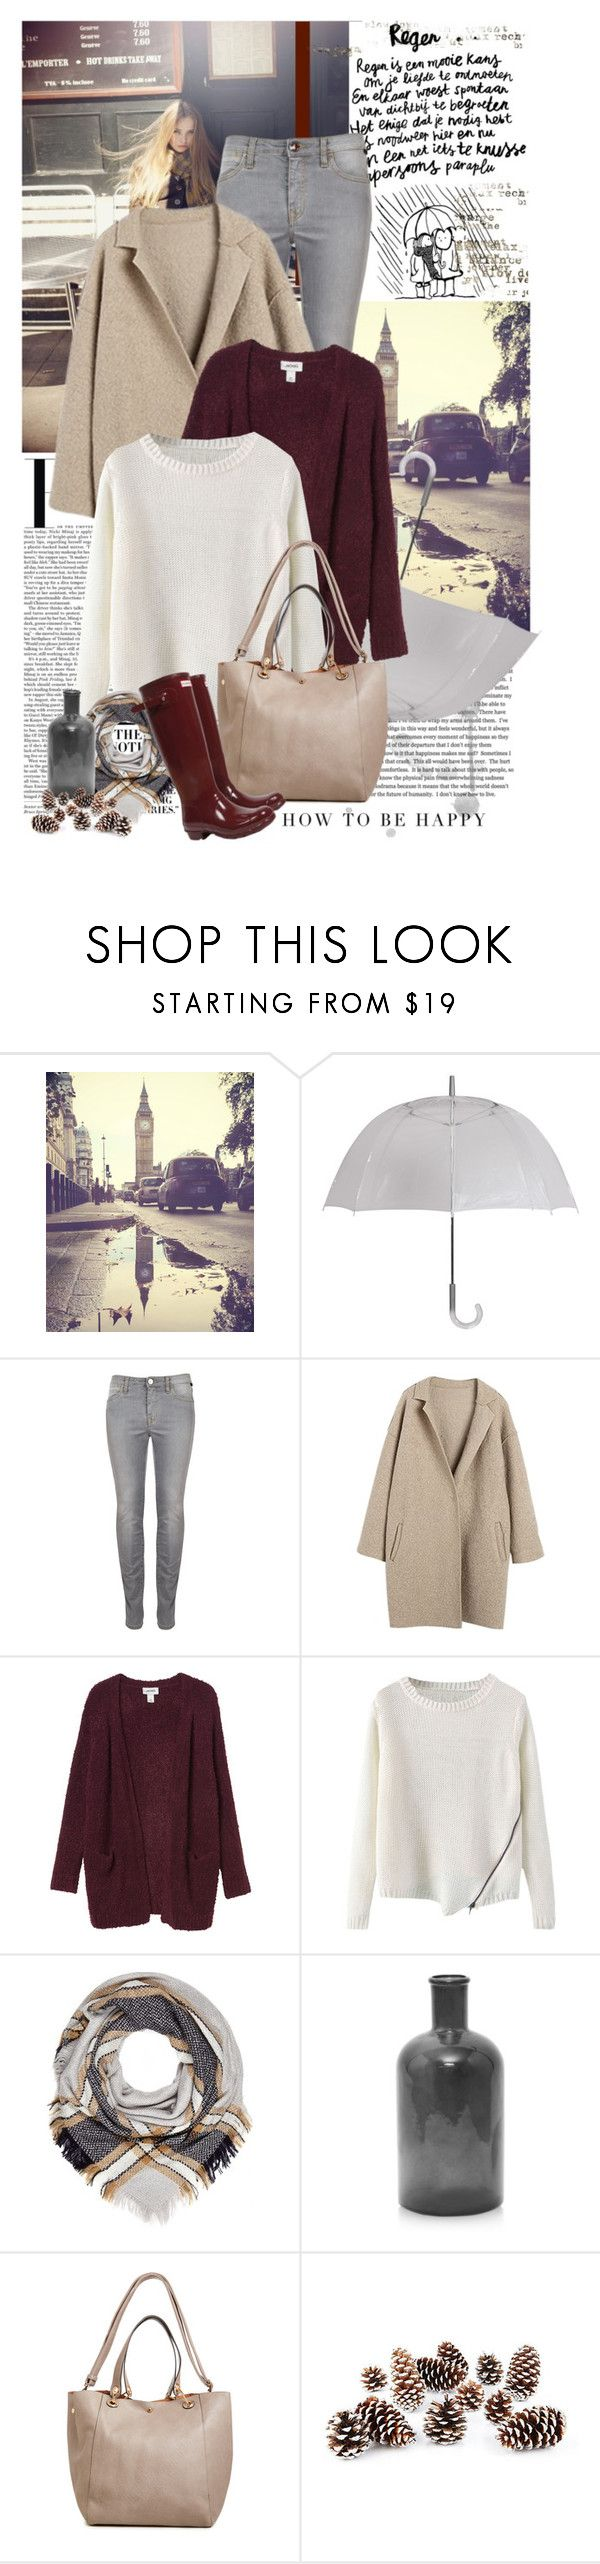 """""""happy rainy day"""" by jesuisunlapin ❤ liked on Polyvore featuring Nicki Minaj, ANNA, Again, Leighton, Vivienne Westwood Anglomania, Monki, River Island, French Connection, Hunter and Knud Nielsen Company"""